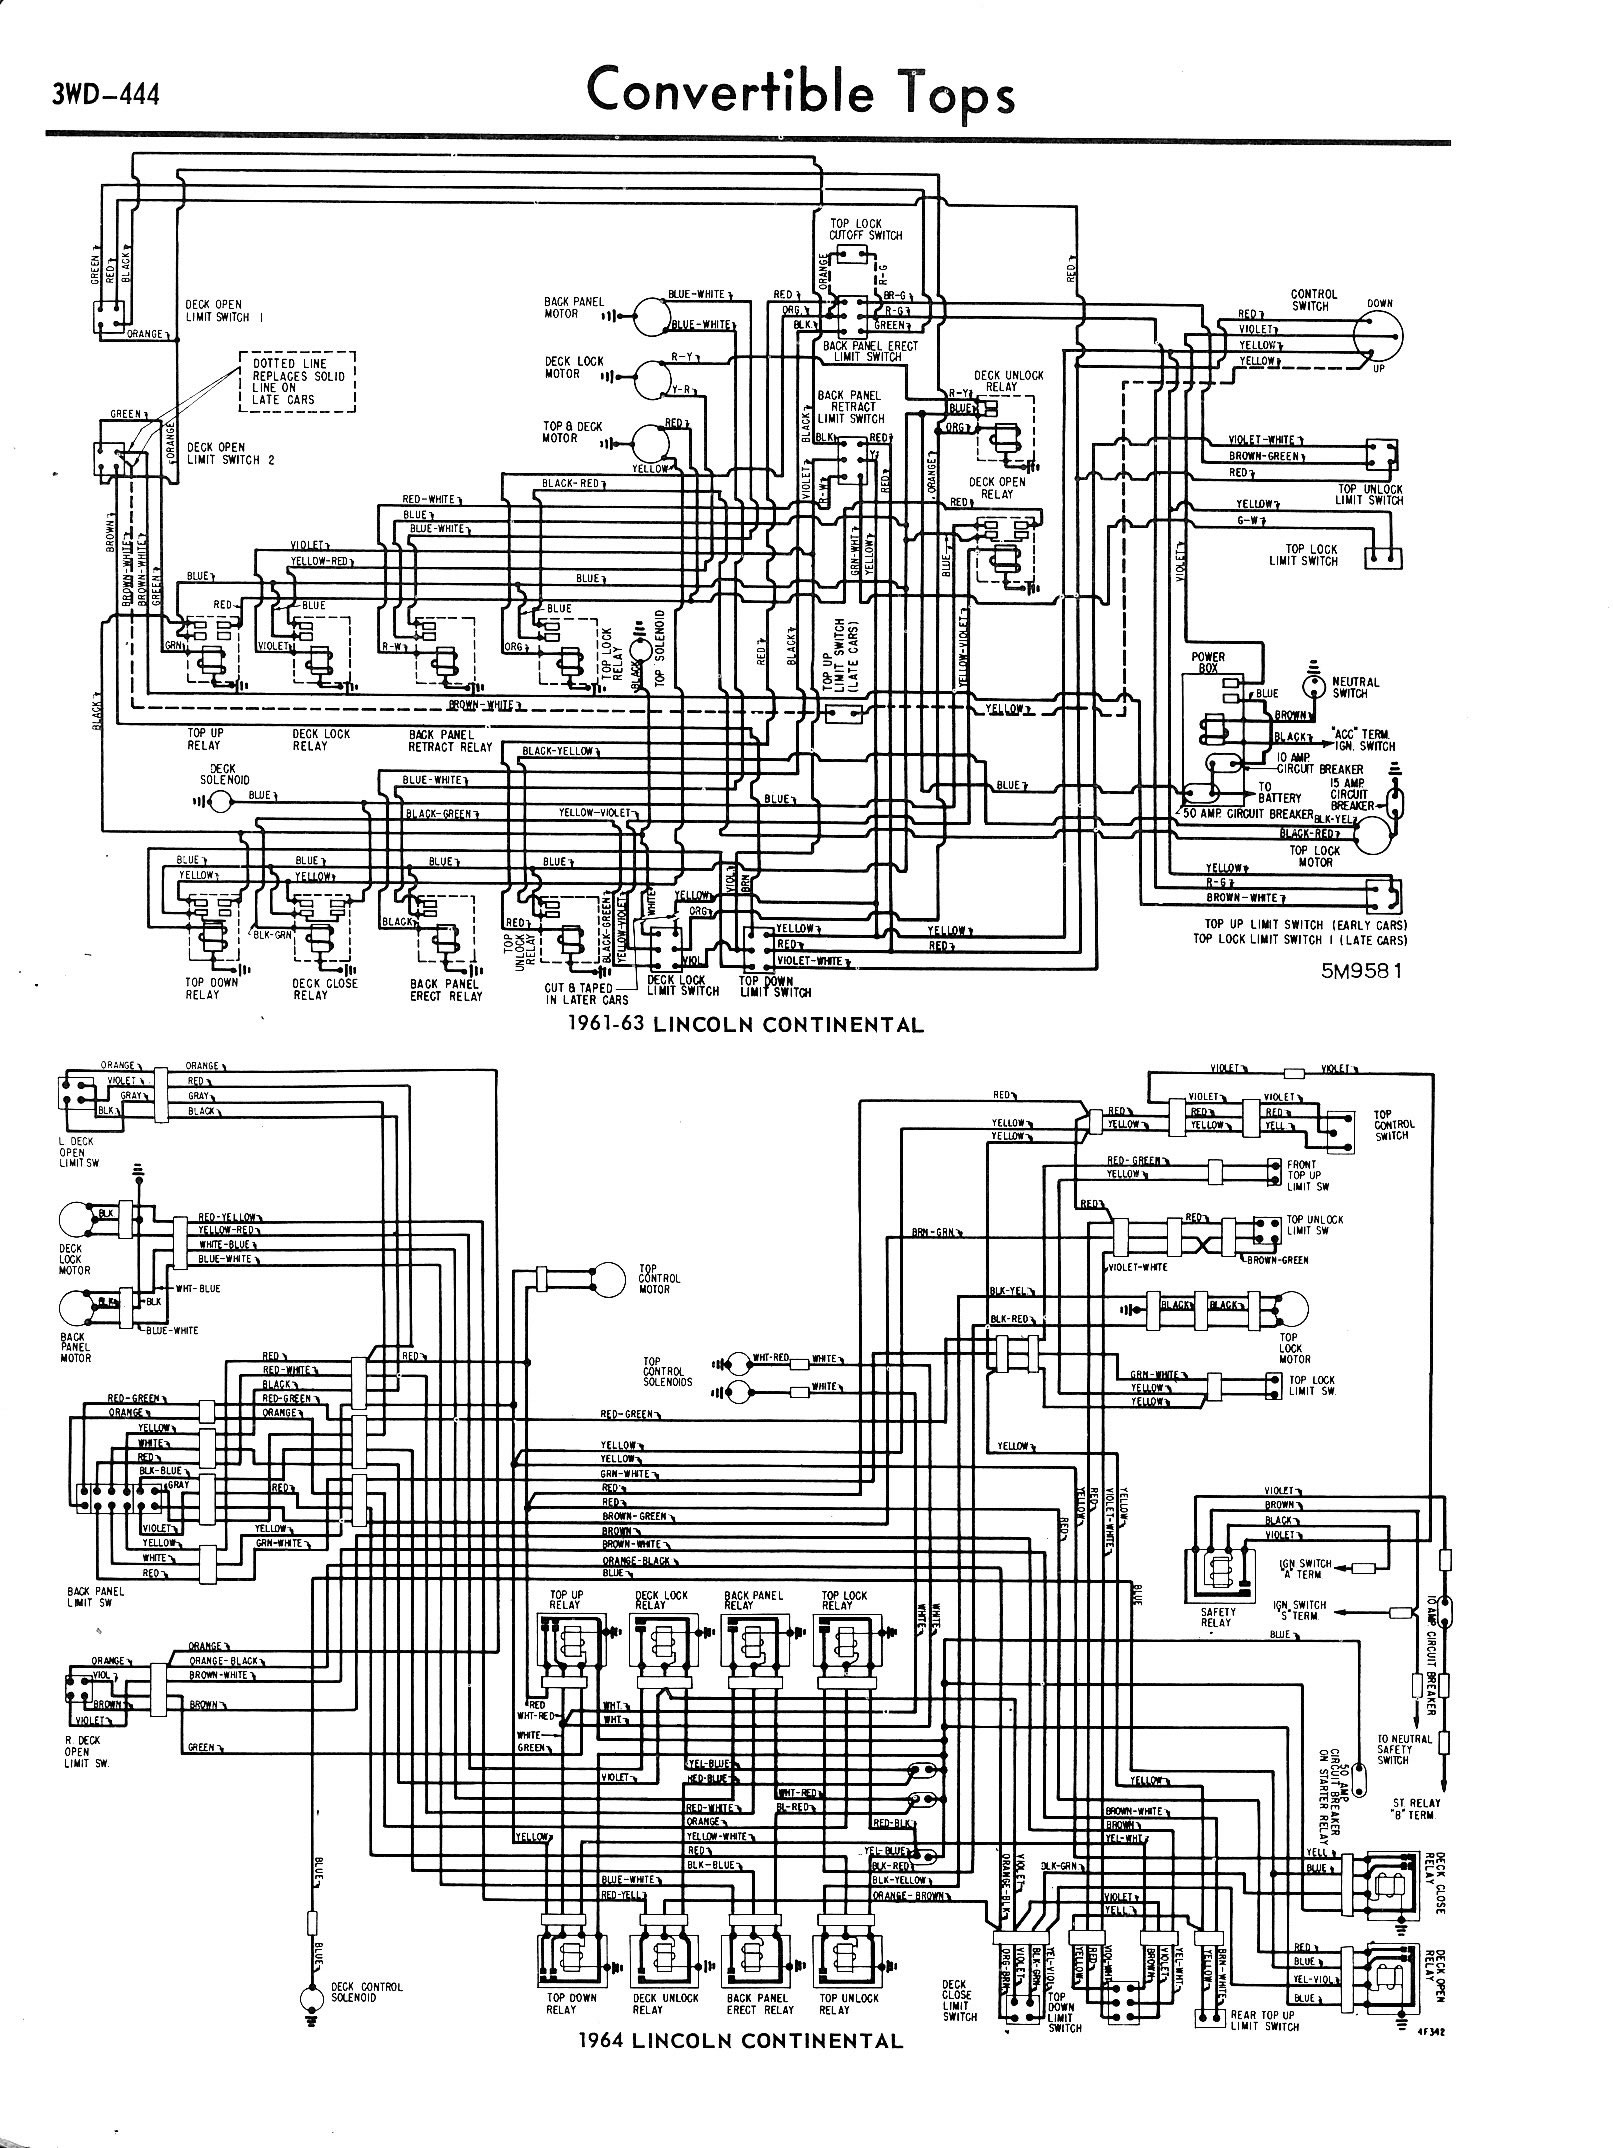 E36 Convertible Top Wiring Diagram Worksheet And Smg 100 Free U2022 Rh Williammcdaniel Co Bmw